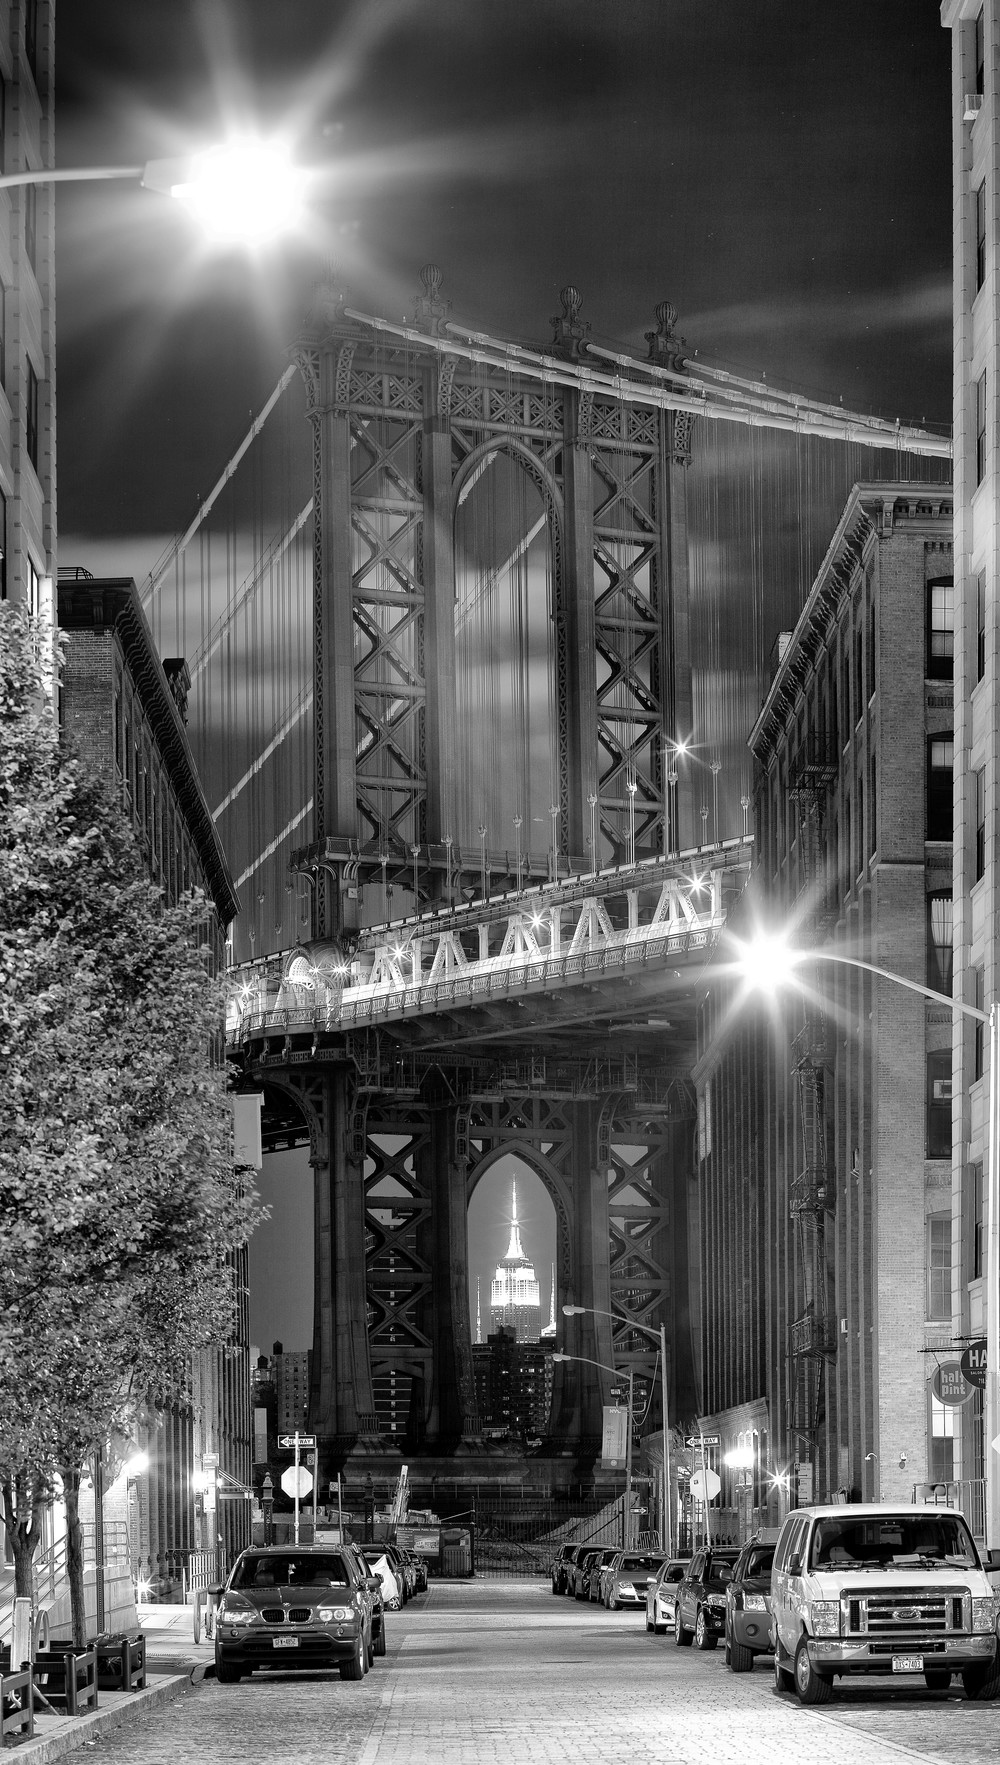 20141026_New_York_Workshop_5420-Edit.jpg